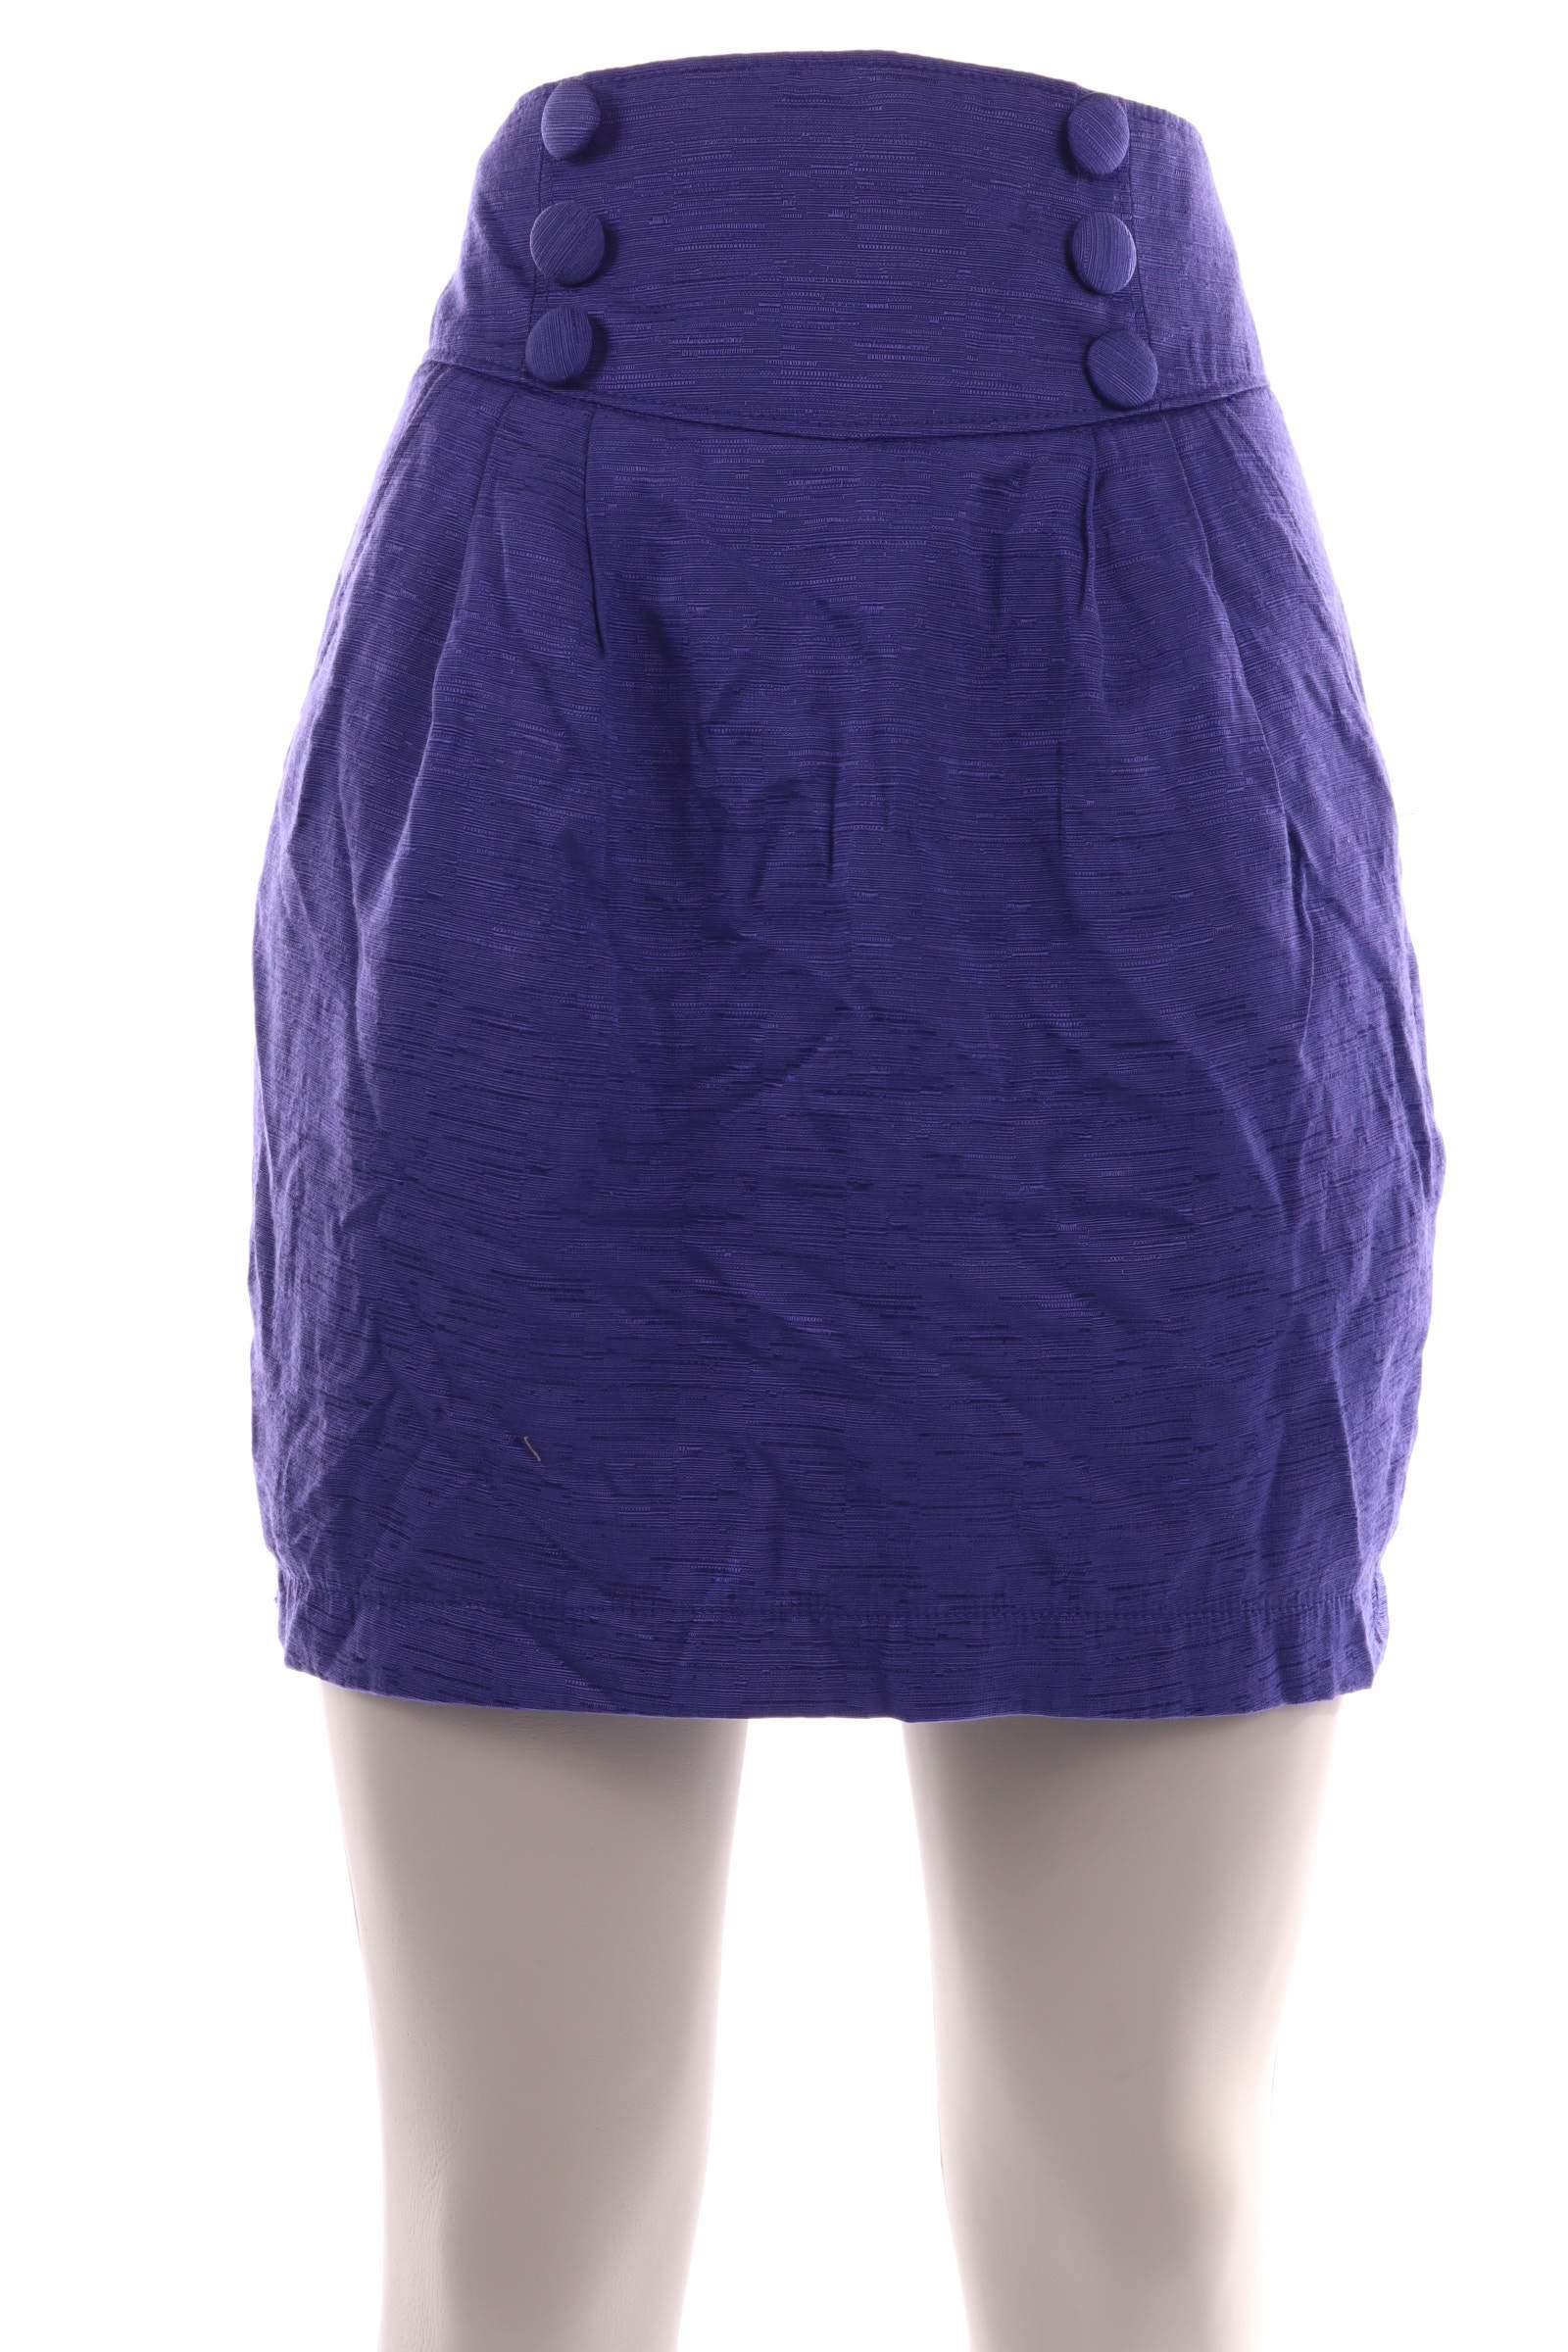 Divided Blue Skirt - upty.store